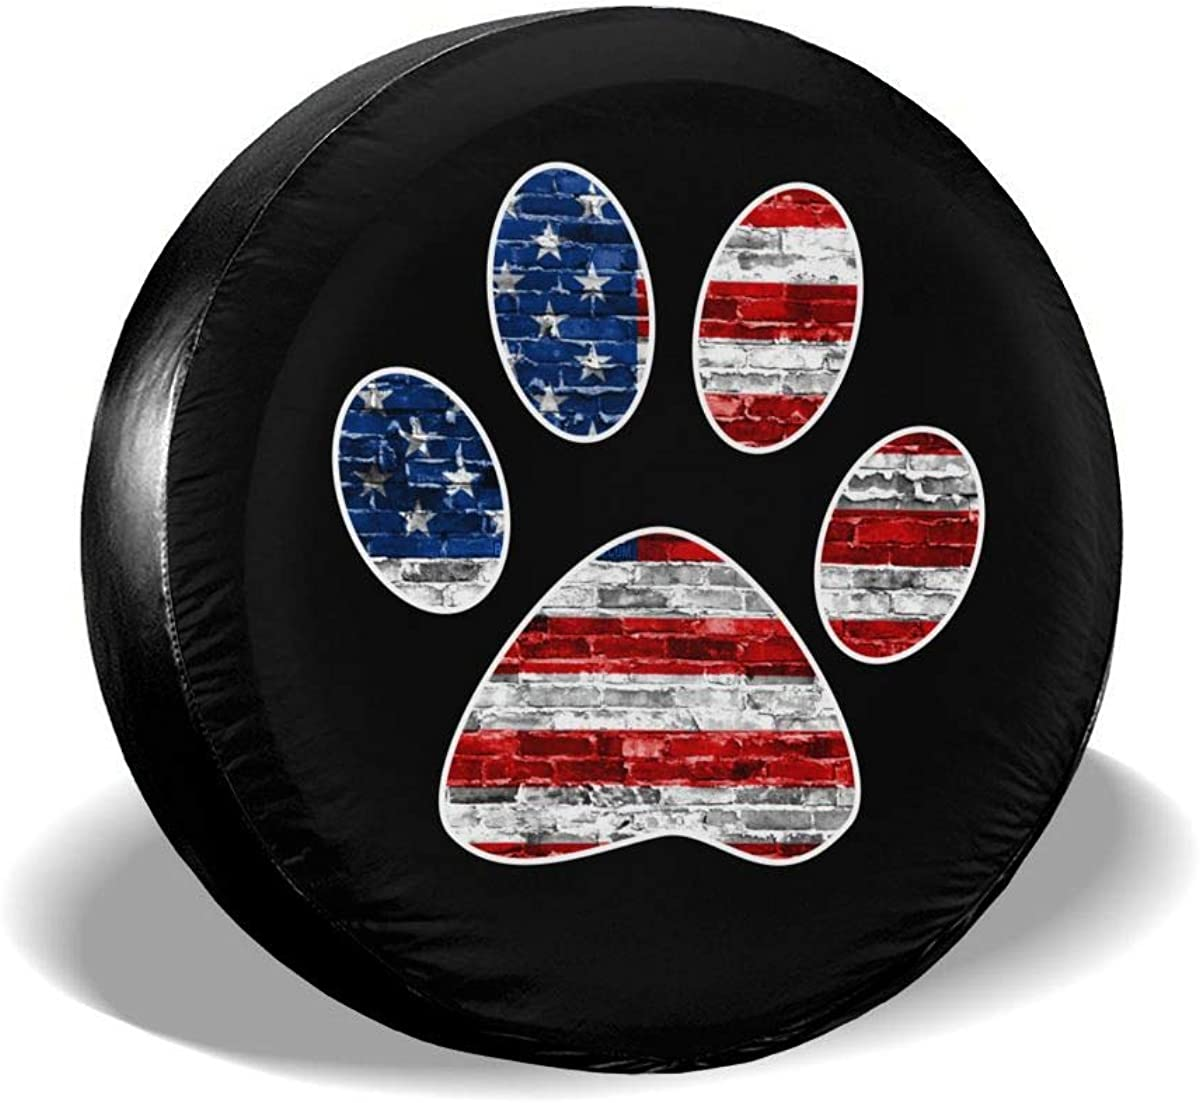 YZ-MAMU American Flag Dog Max 77% OFF Paw Cover Waterproo Tire Spare Printed Max 77% OFF